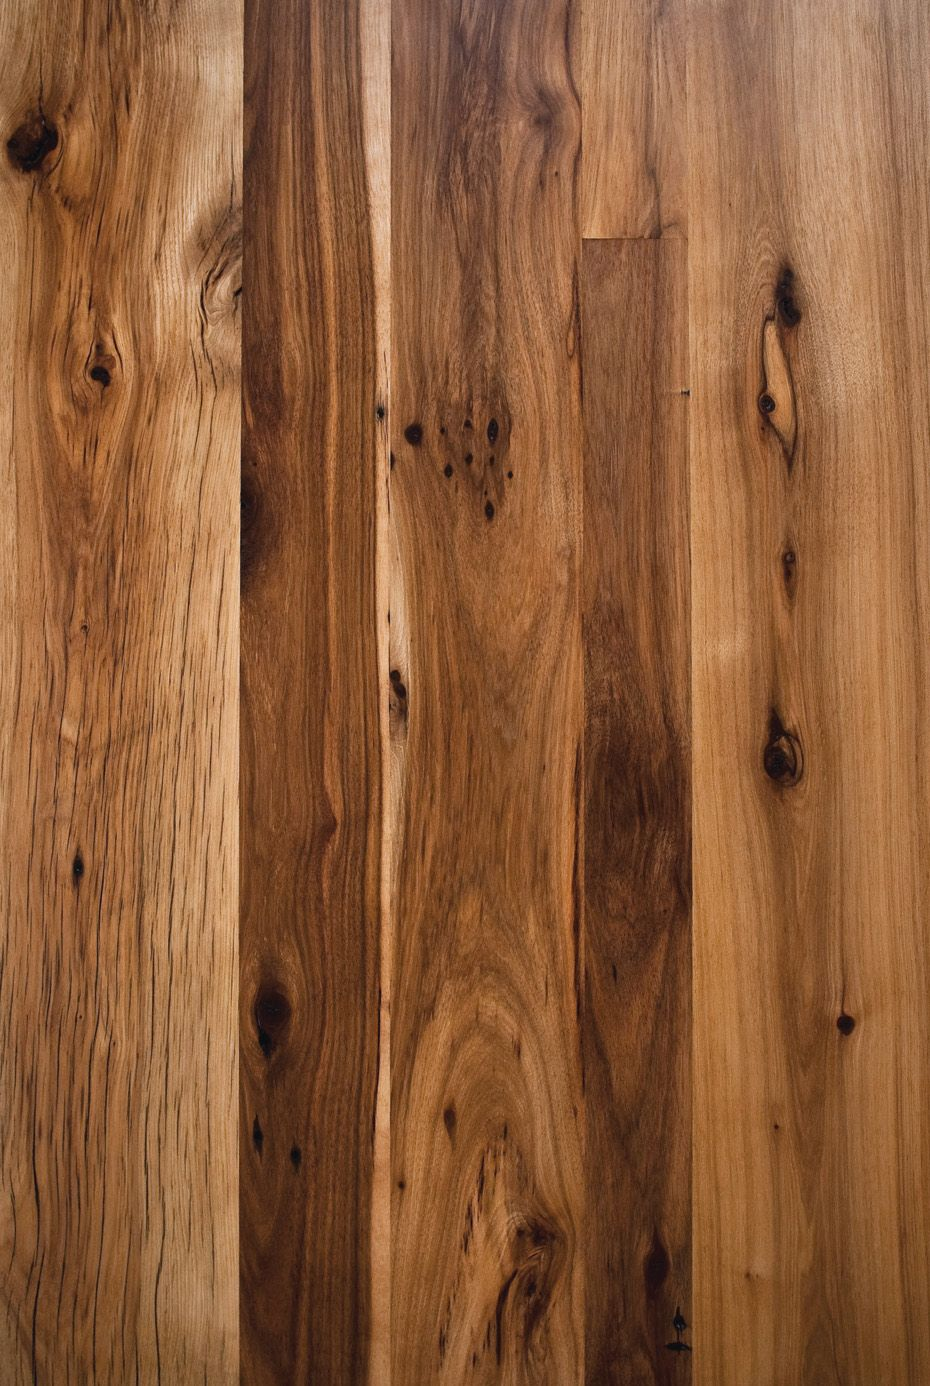 Hickory Wood Floors Reclaimed Antique Flooring Hickory